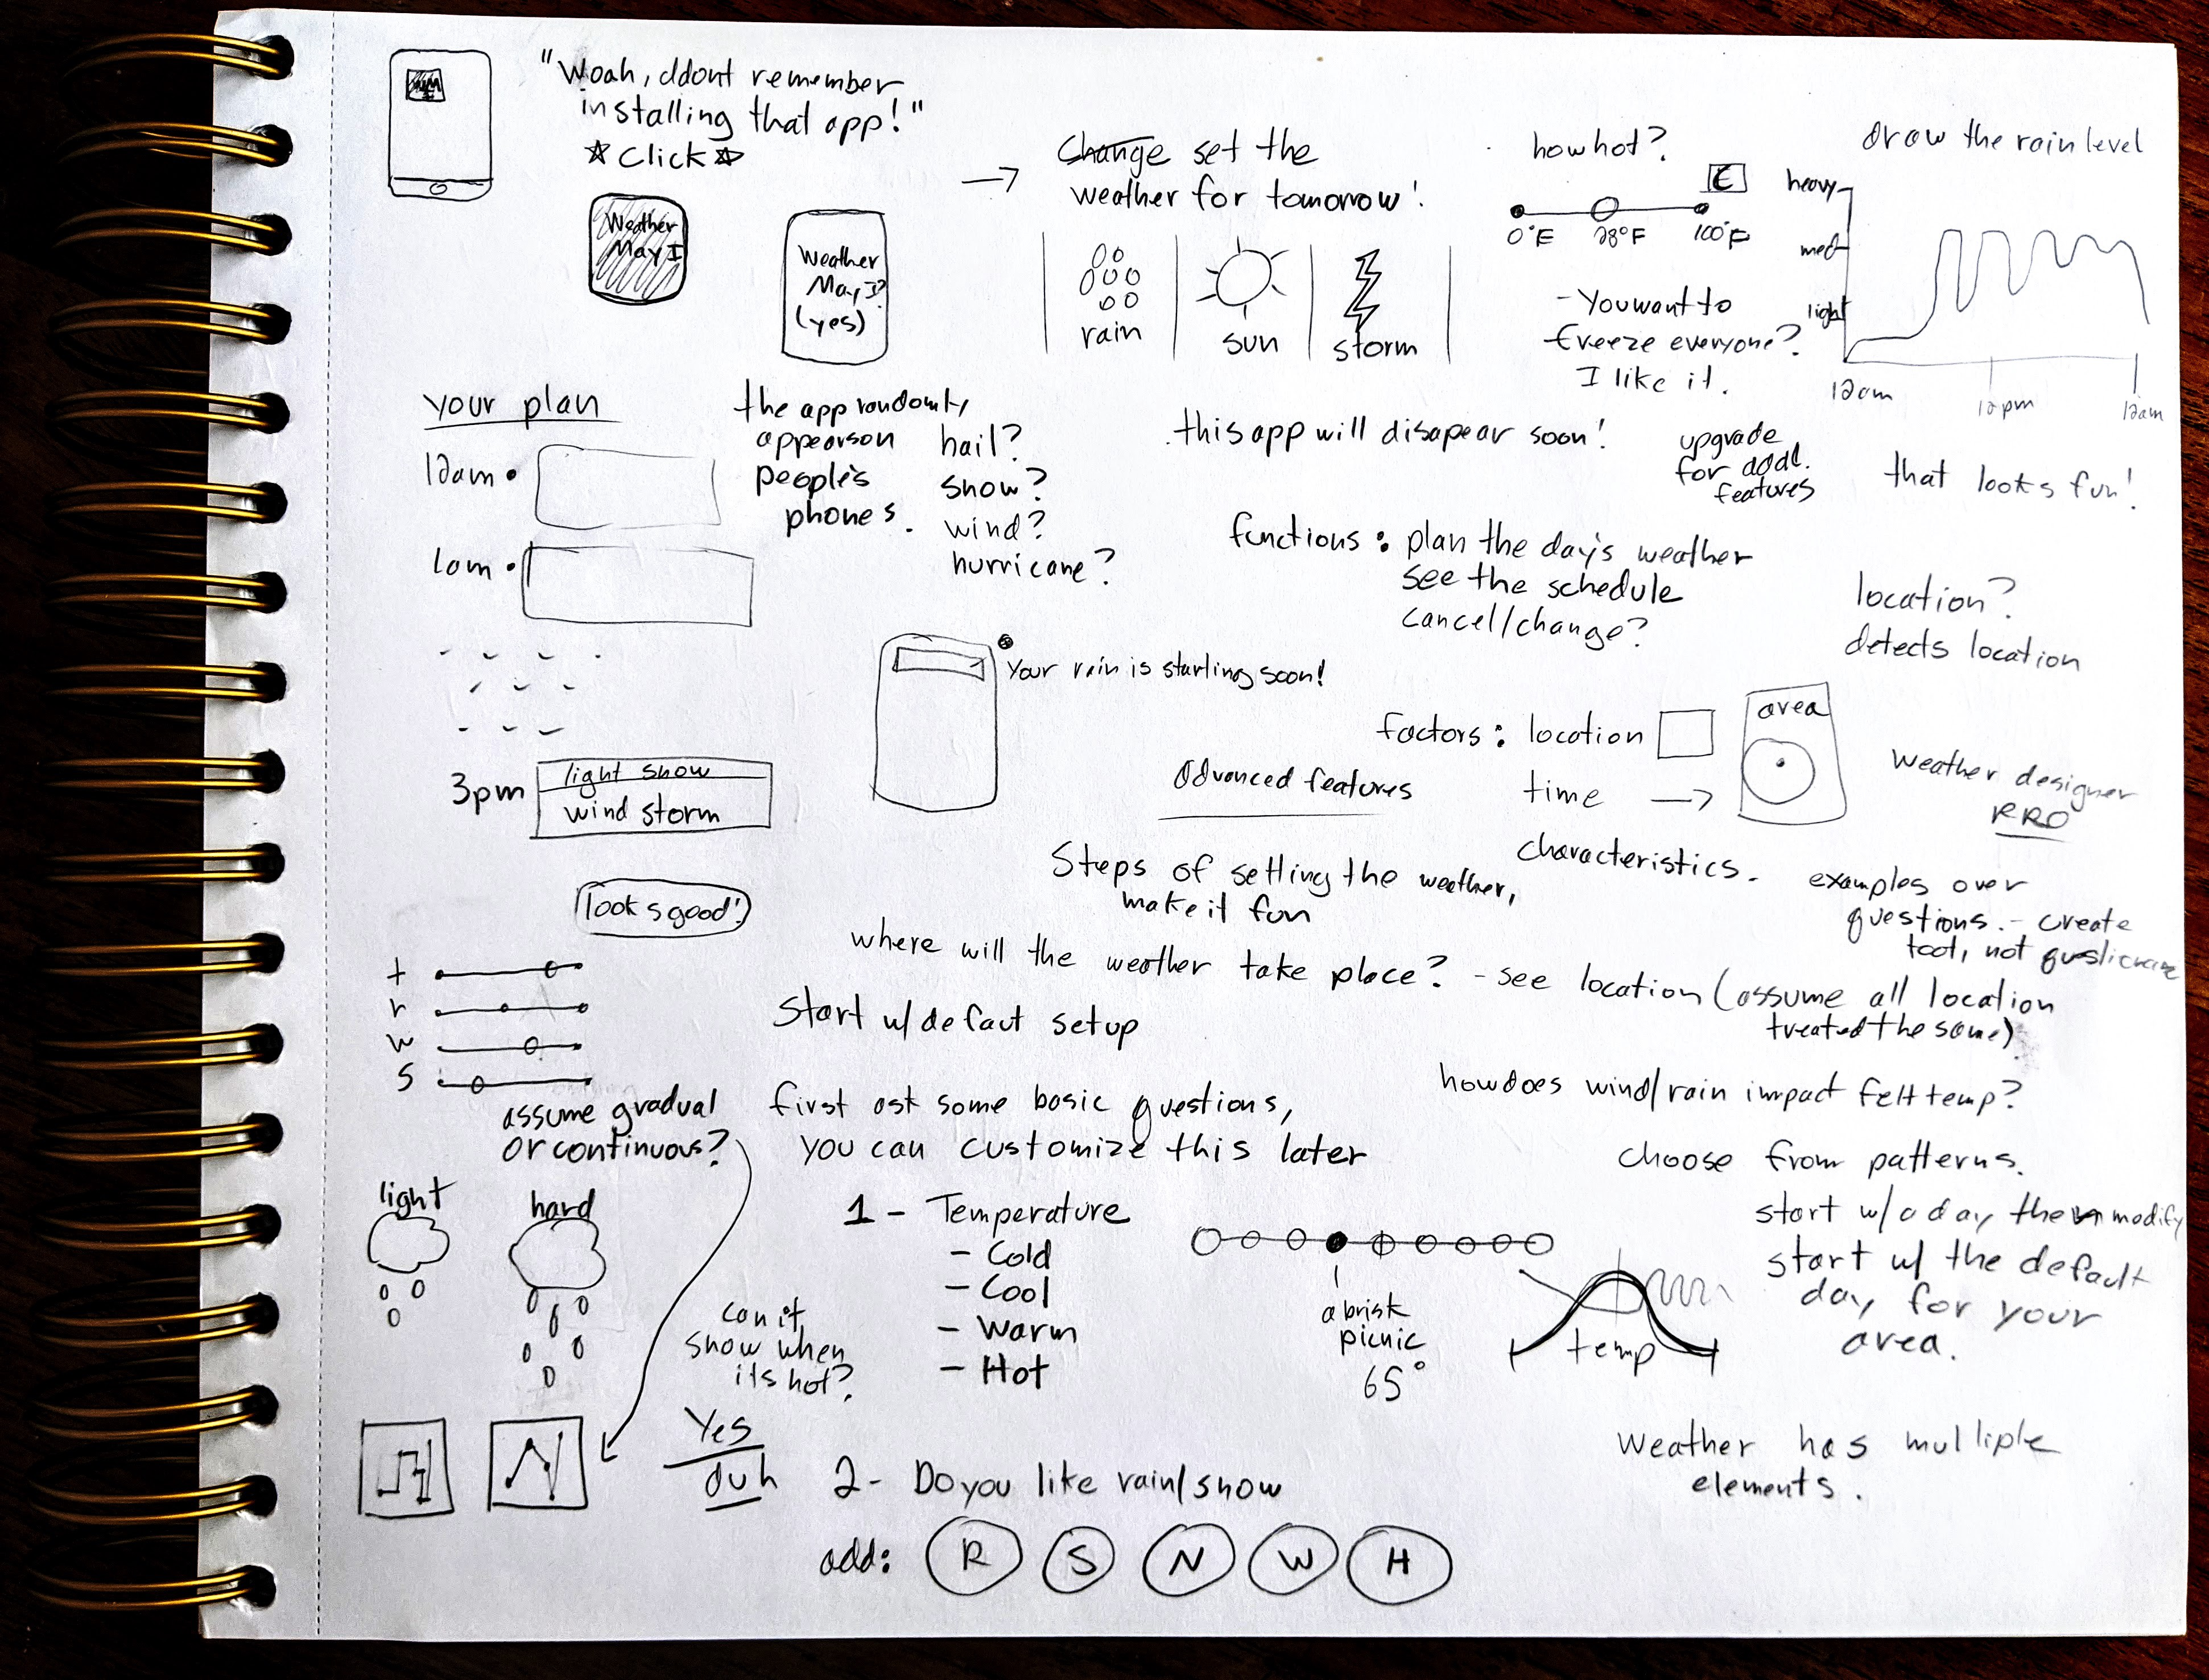 Stream-of-consciousness writing/sketching on paper